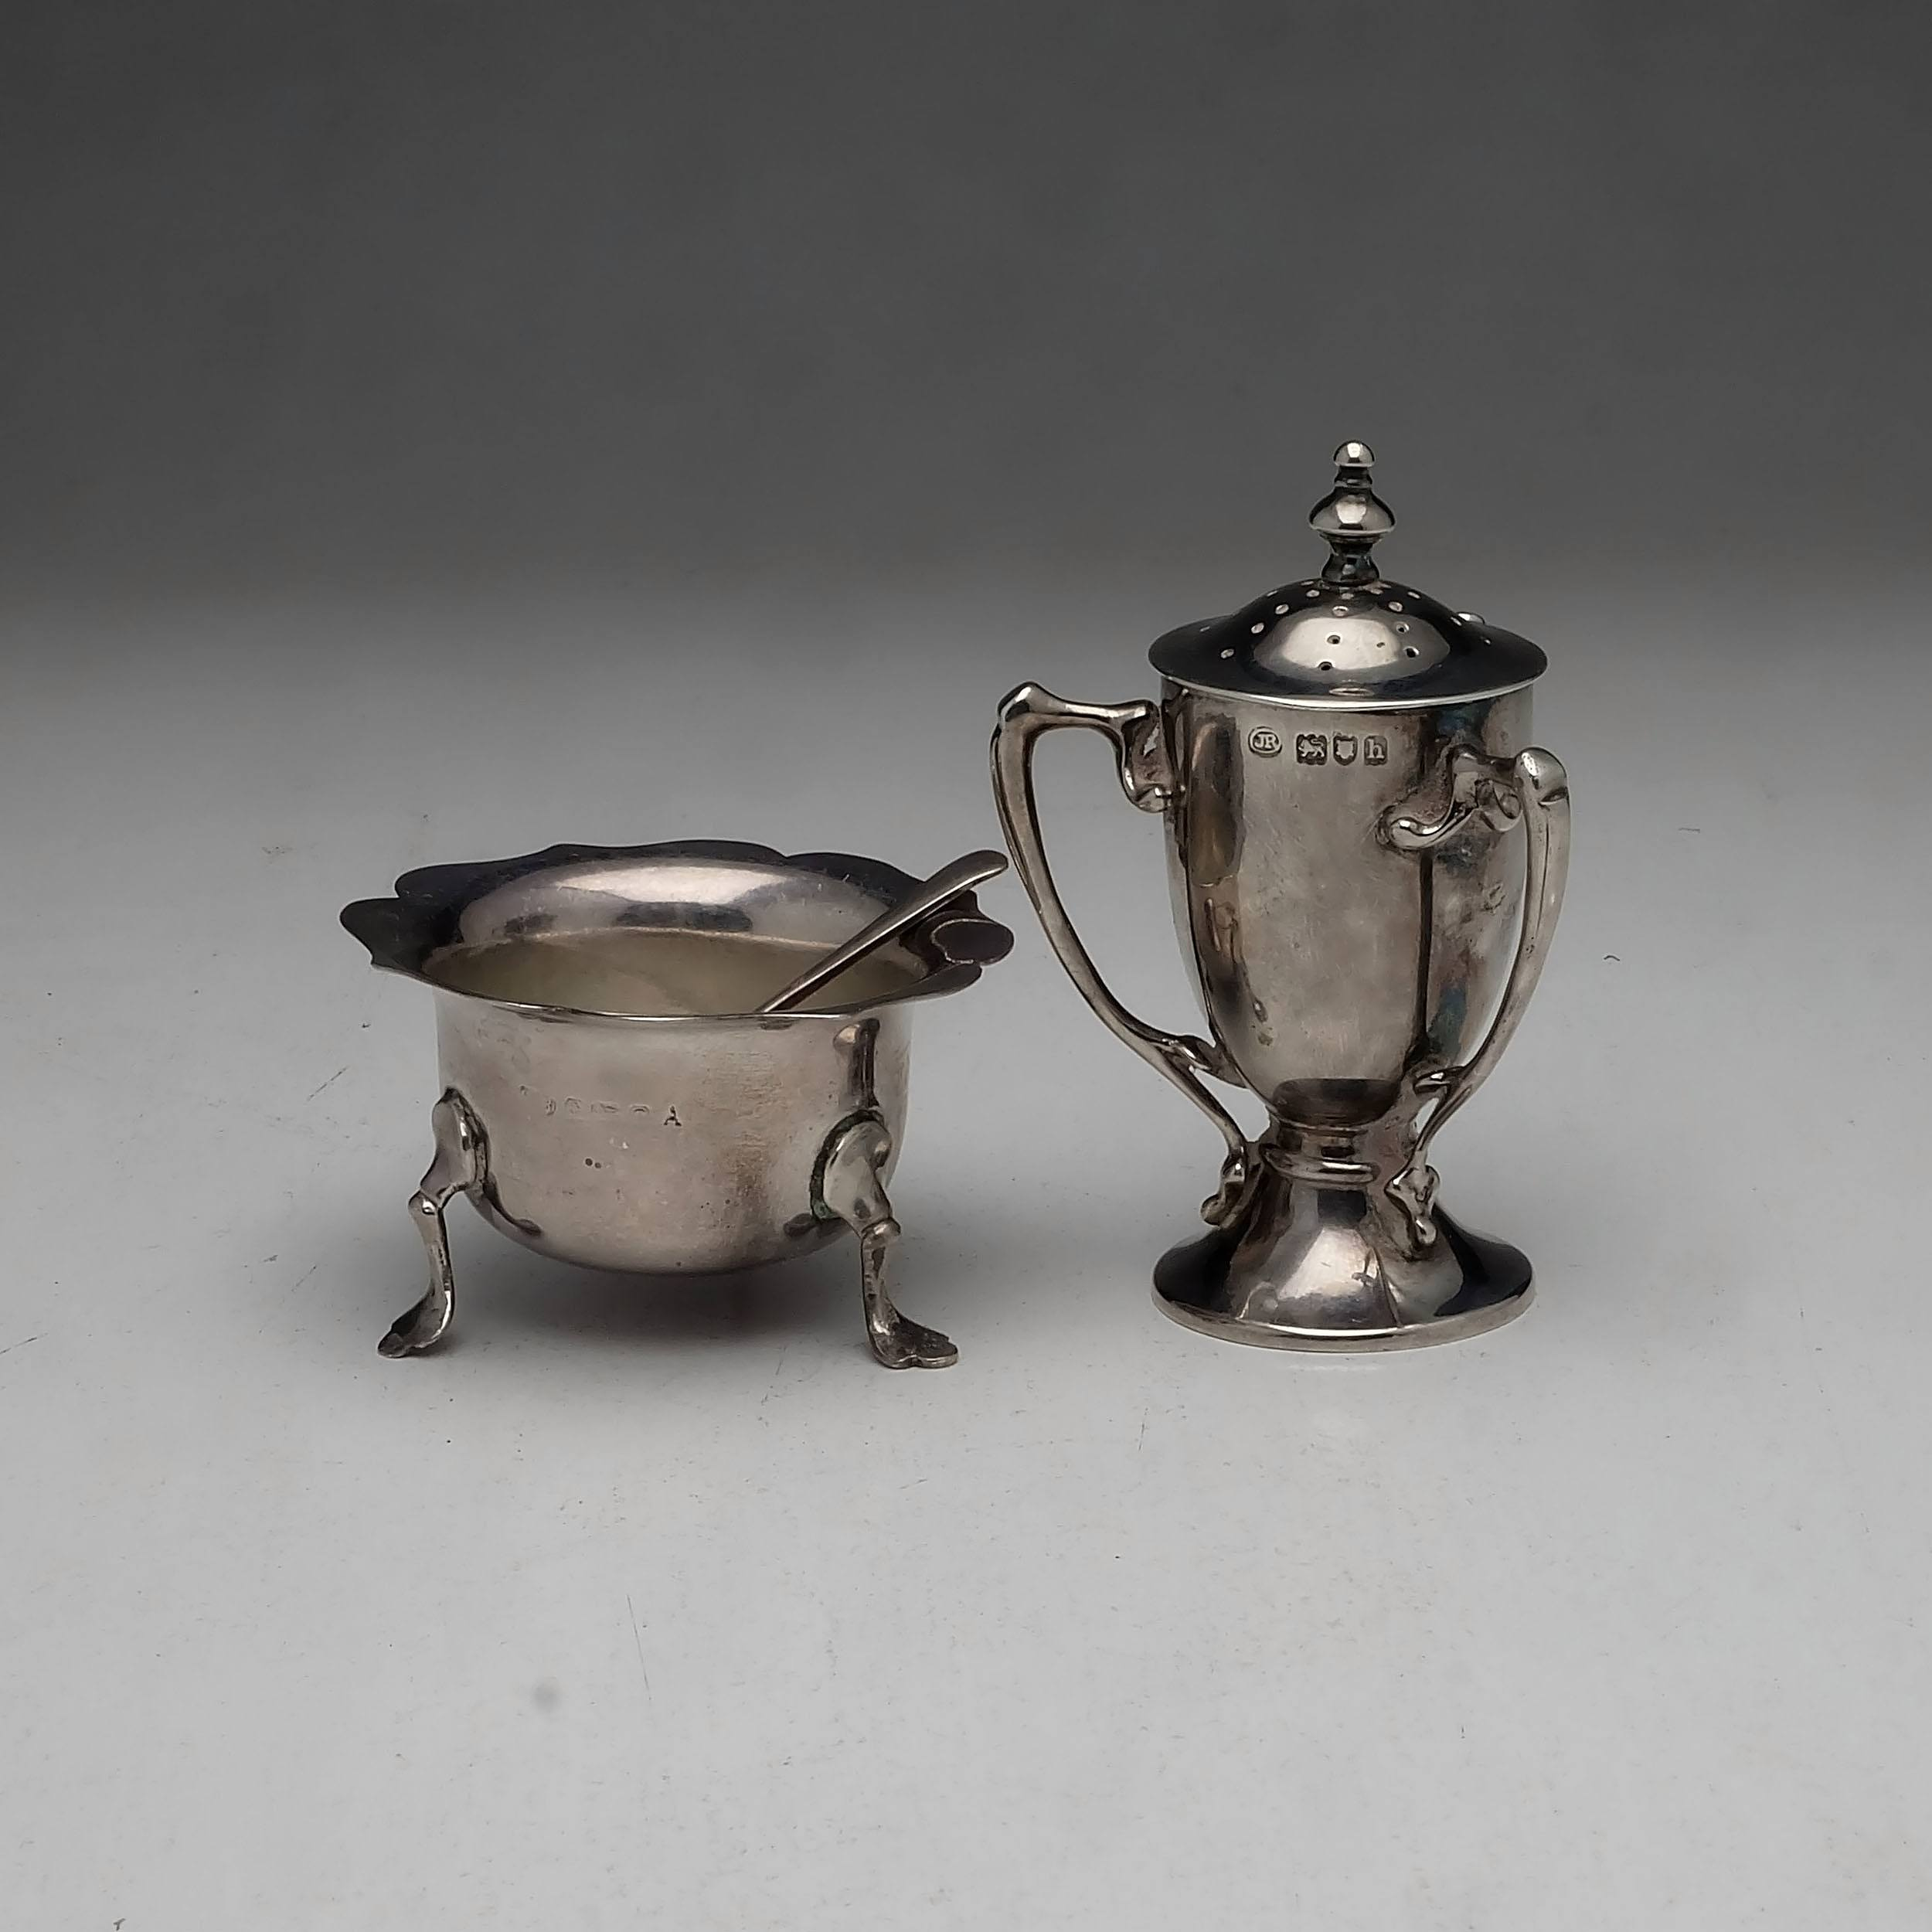 'Edwardian Sterling Silver Trophy Form Pepper Pot John Round & Son Ltd London 1903, and a Sterling Silver Open Salt Birmingham '